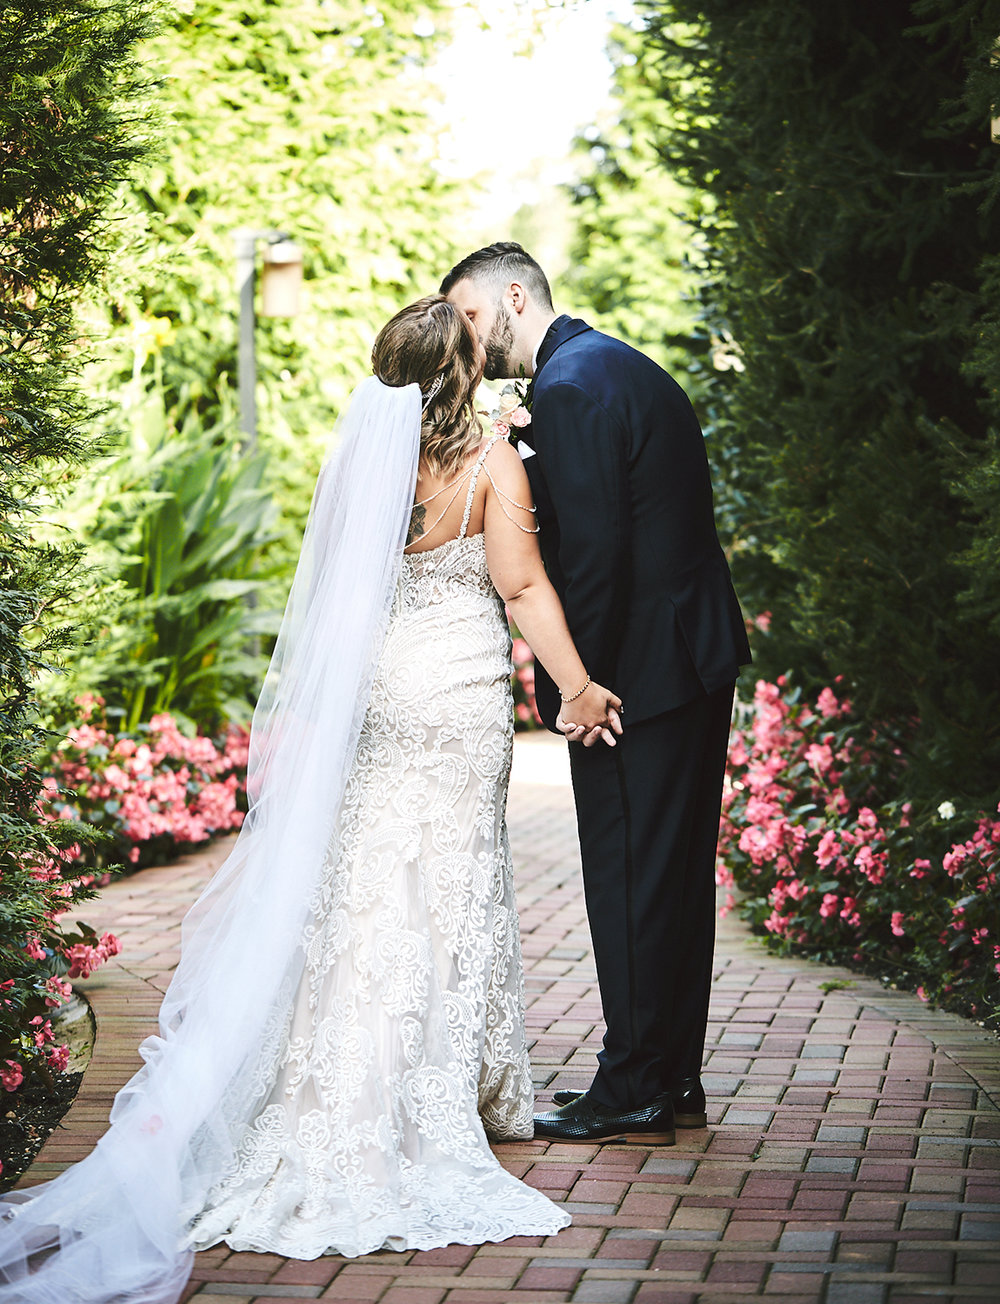 180922_CrestHollowCountryClubWeddingPhotography_LongIslandWeddingPhotographer_By_BriJohnsonWeddings_0041.jpg